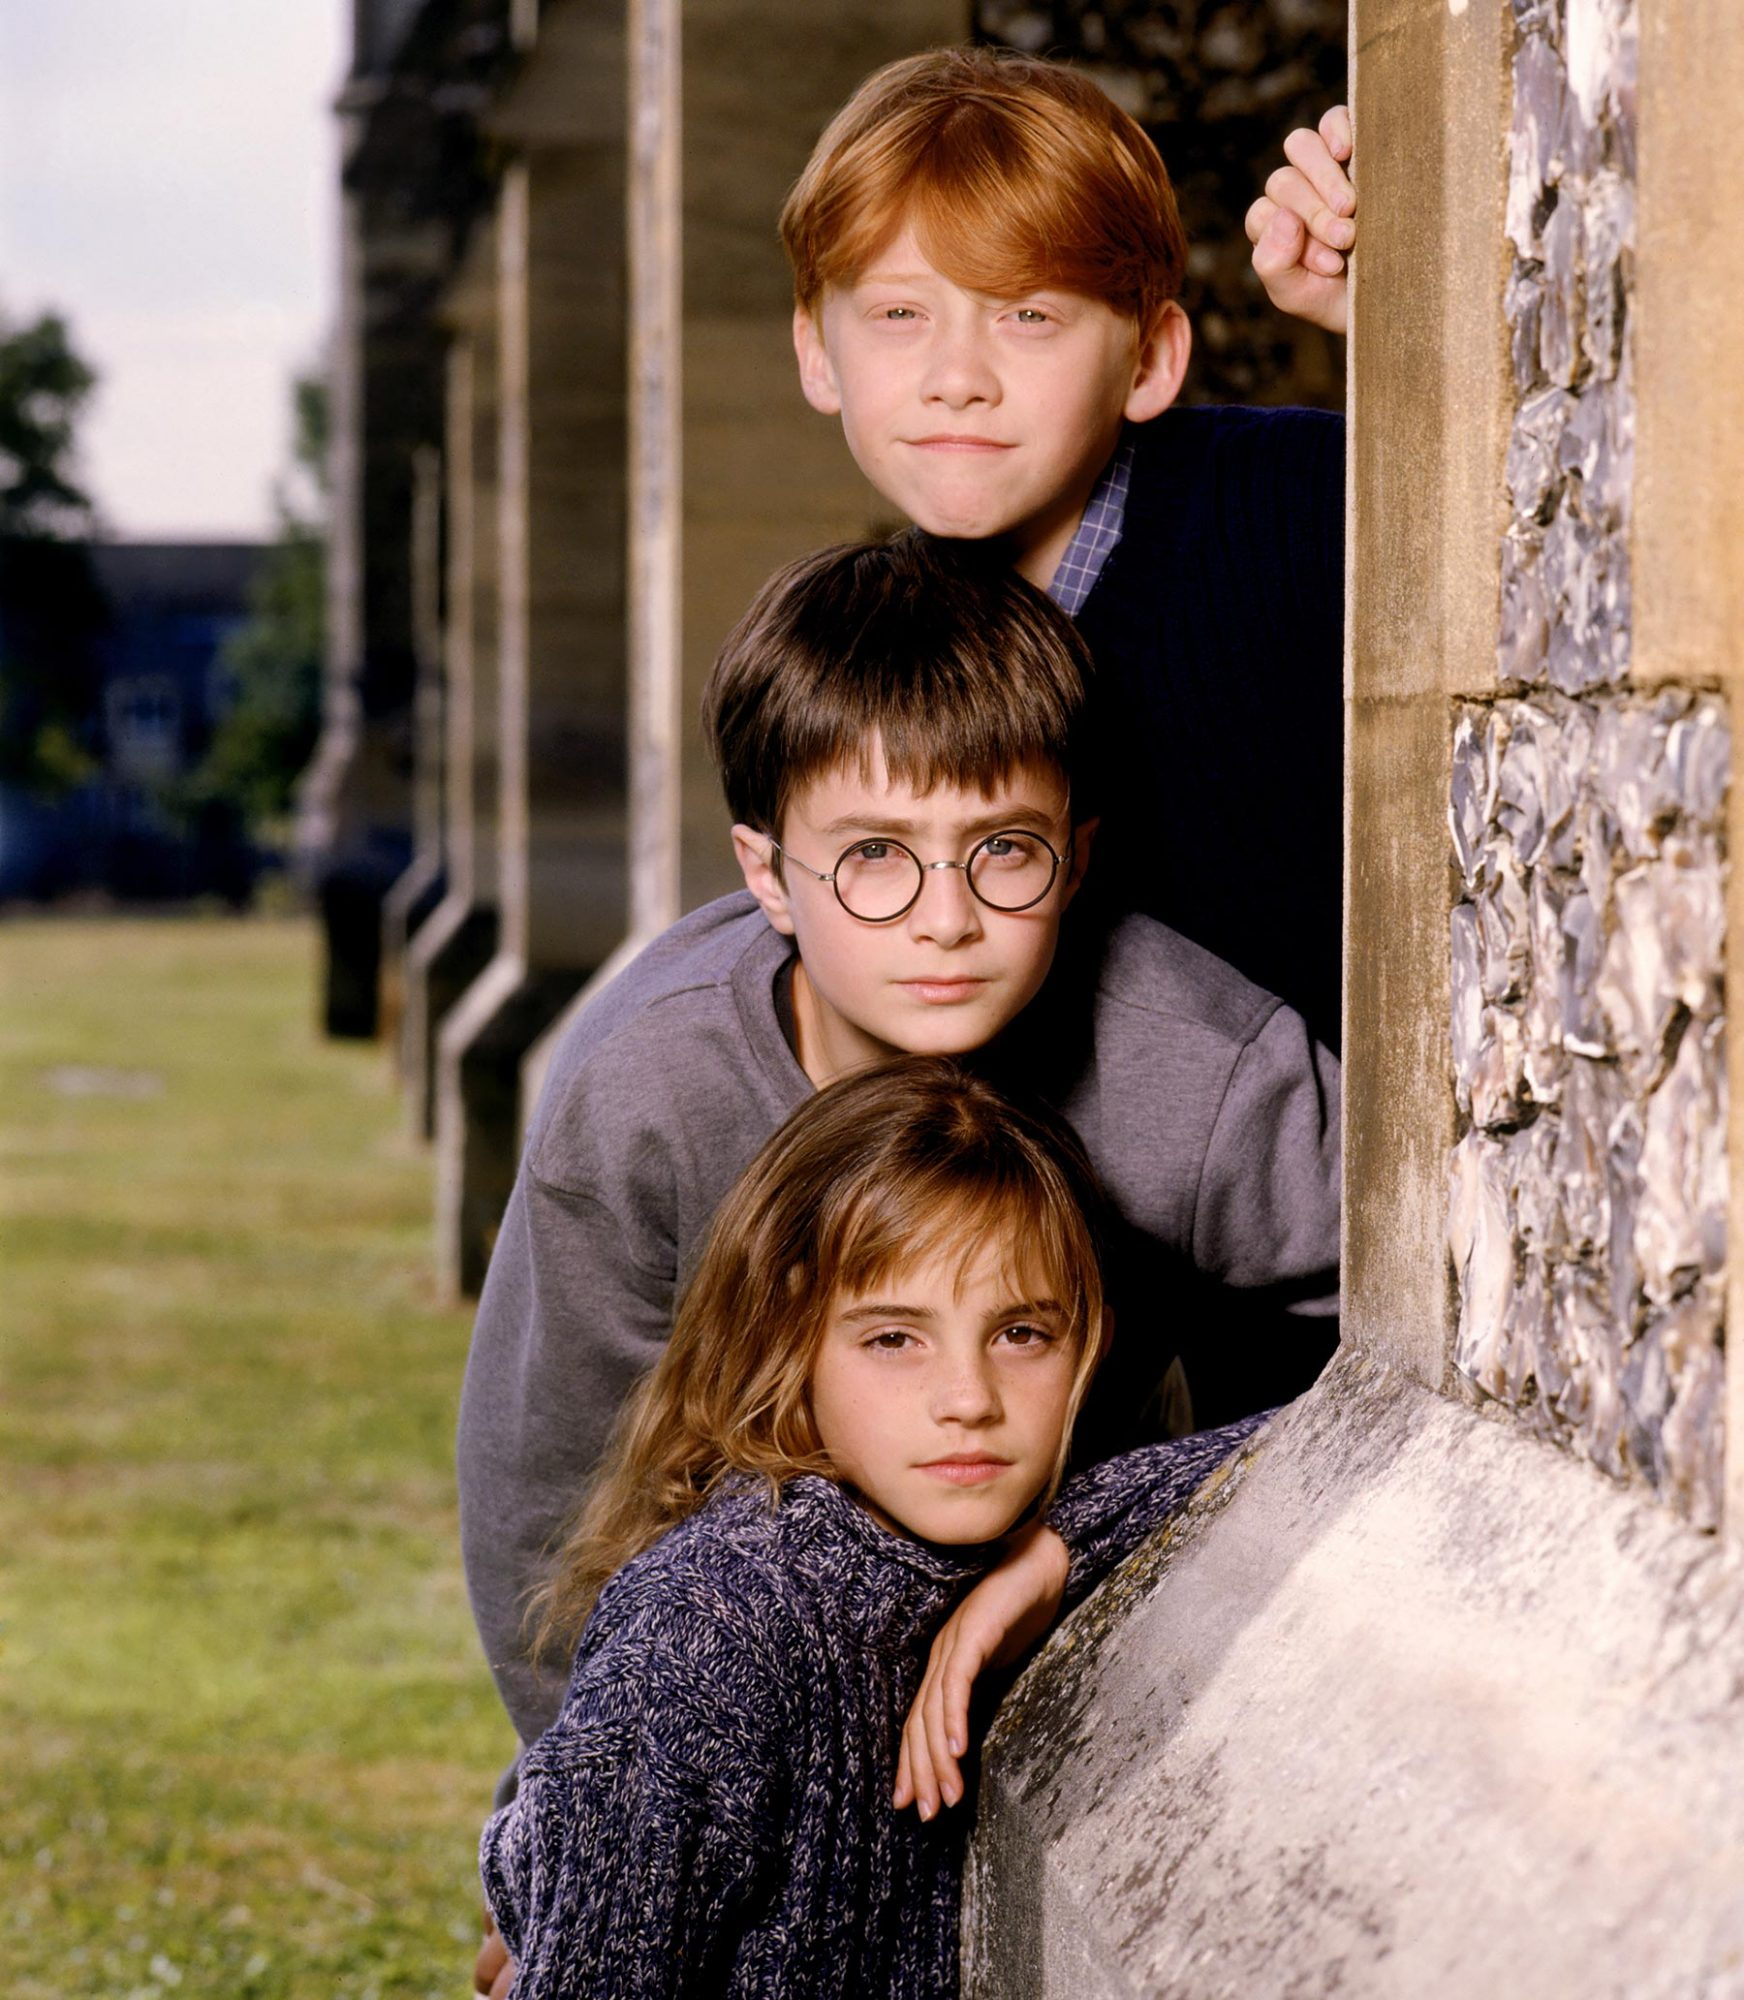 HARRY POTTER AND THE SORCERER'S STONE, from top: Rupert Grint, Daniel Radcliffe, Emma Watson, 2001,